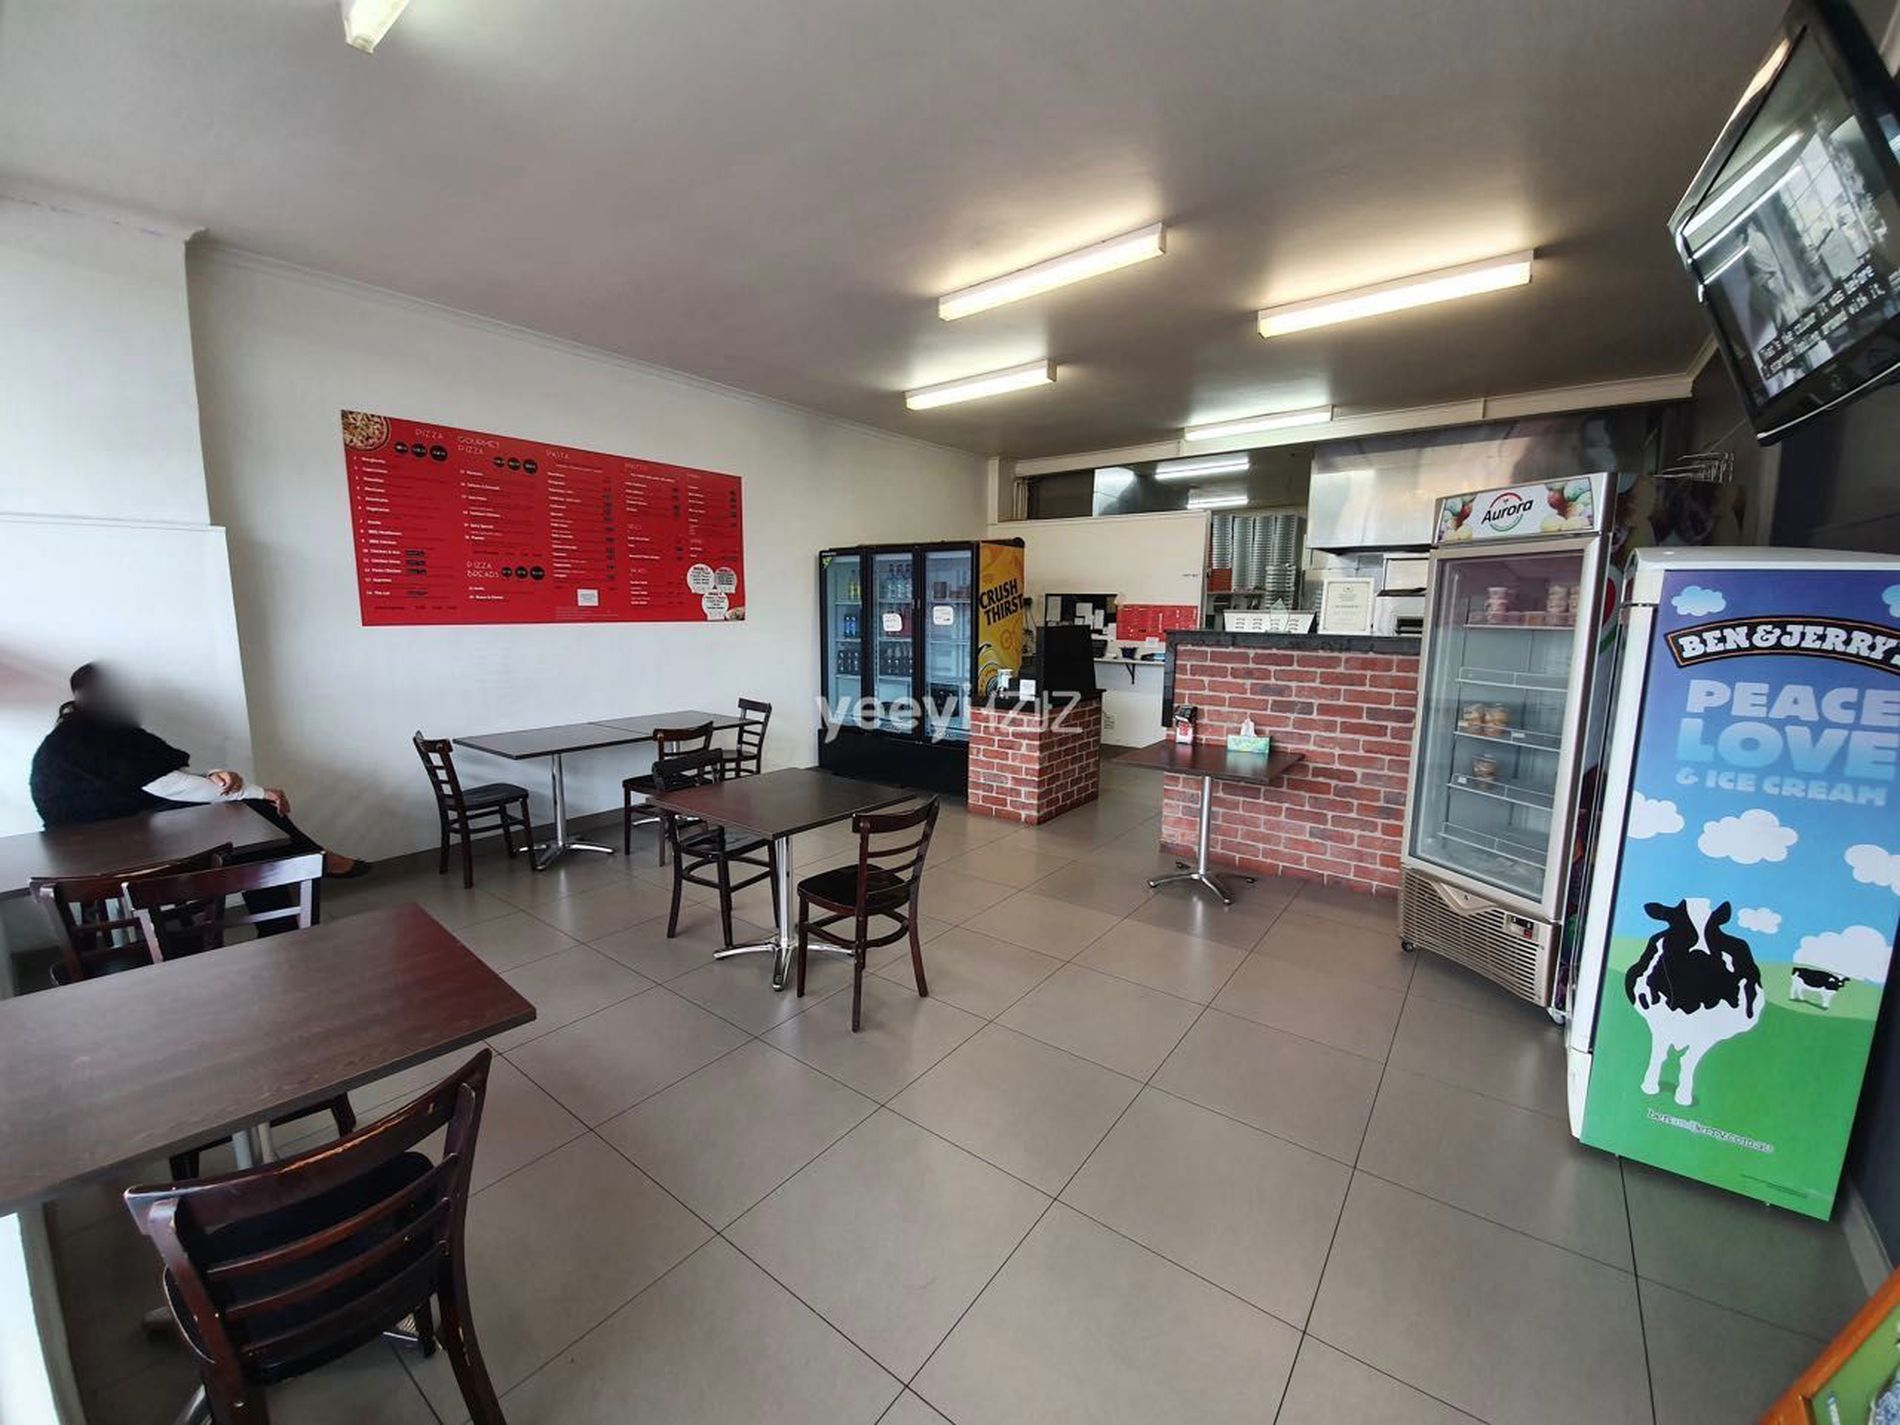 Pizza and Pasta Takeaway business for sale in Seaford